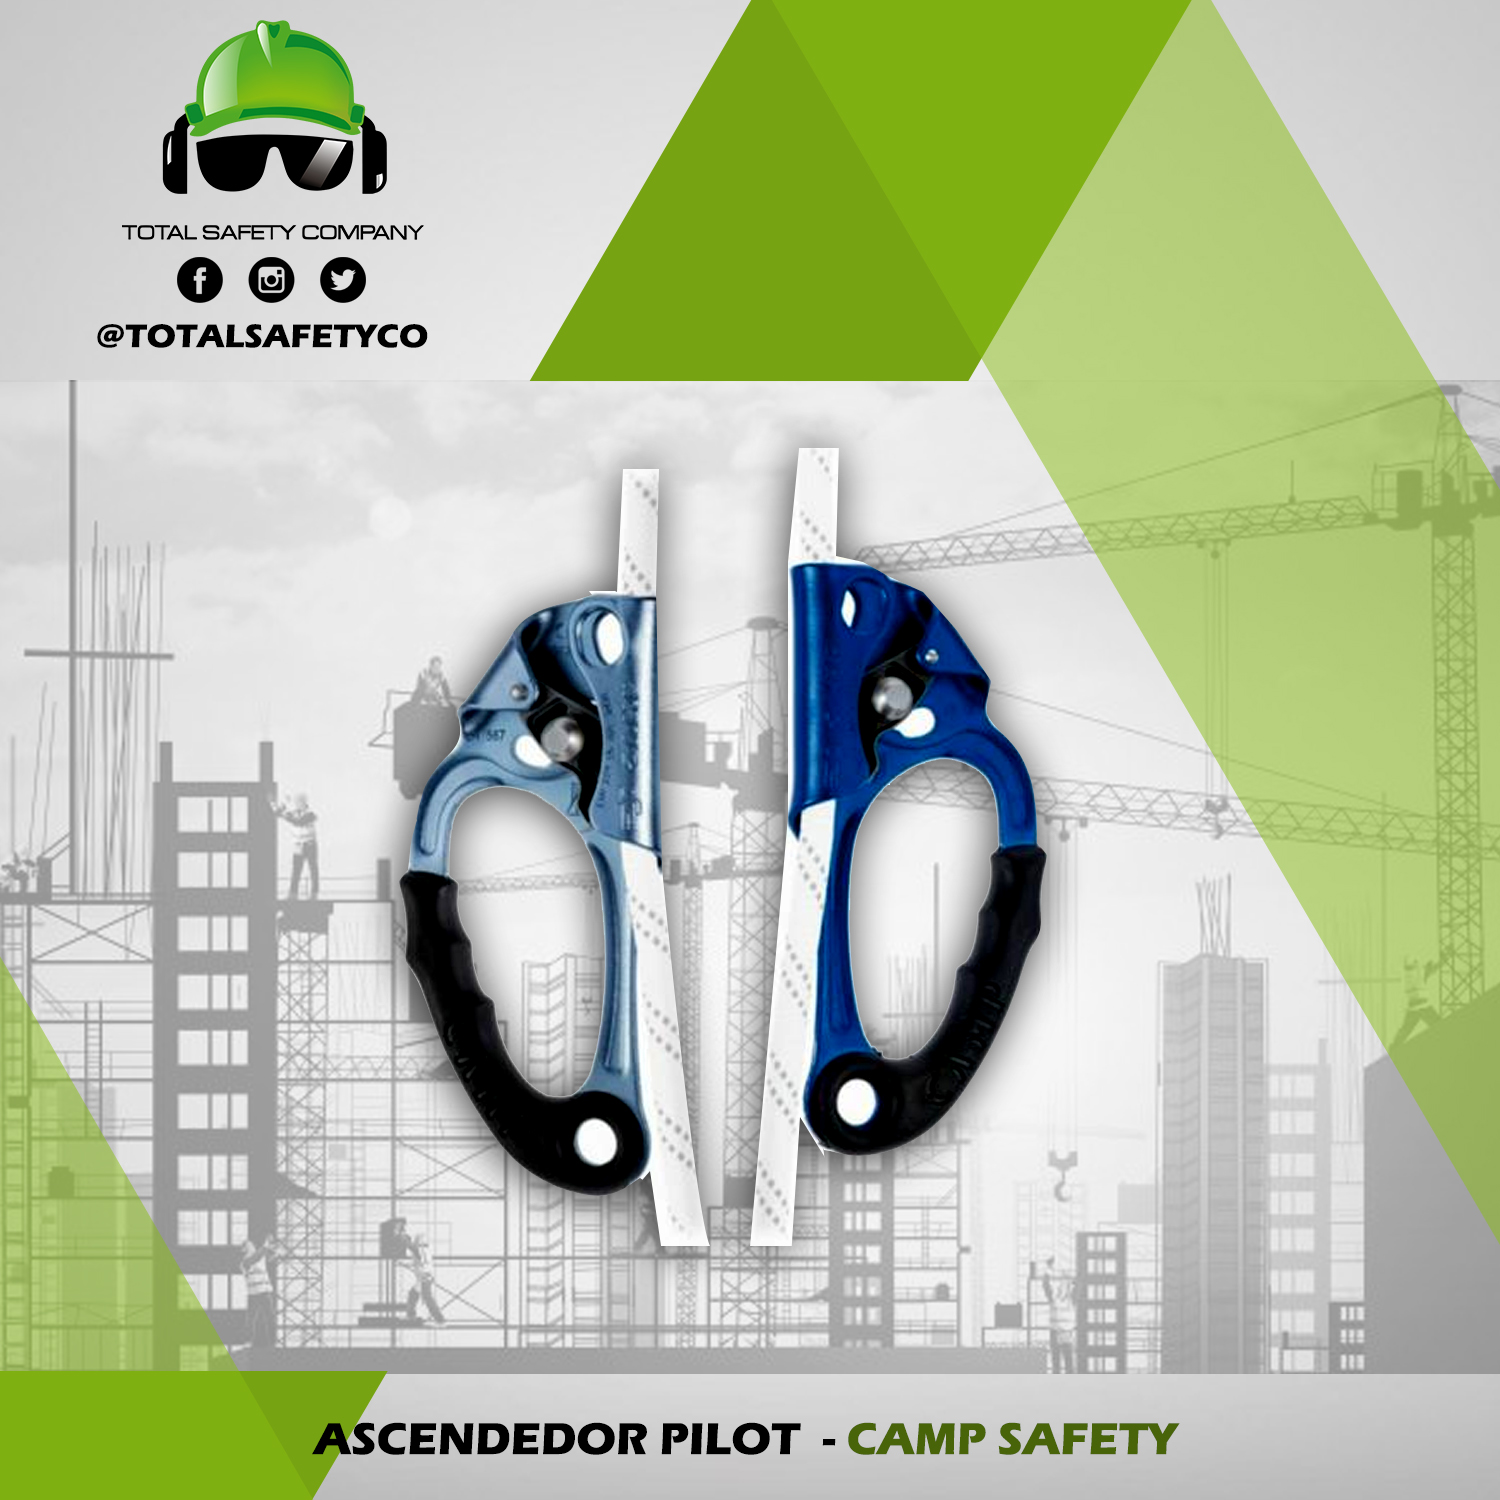 Ascendedor pilot CAMP SAFETY